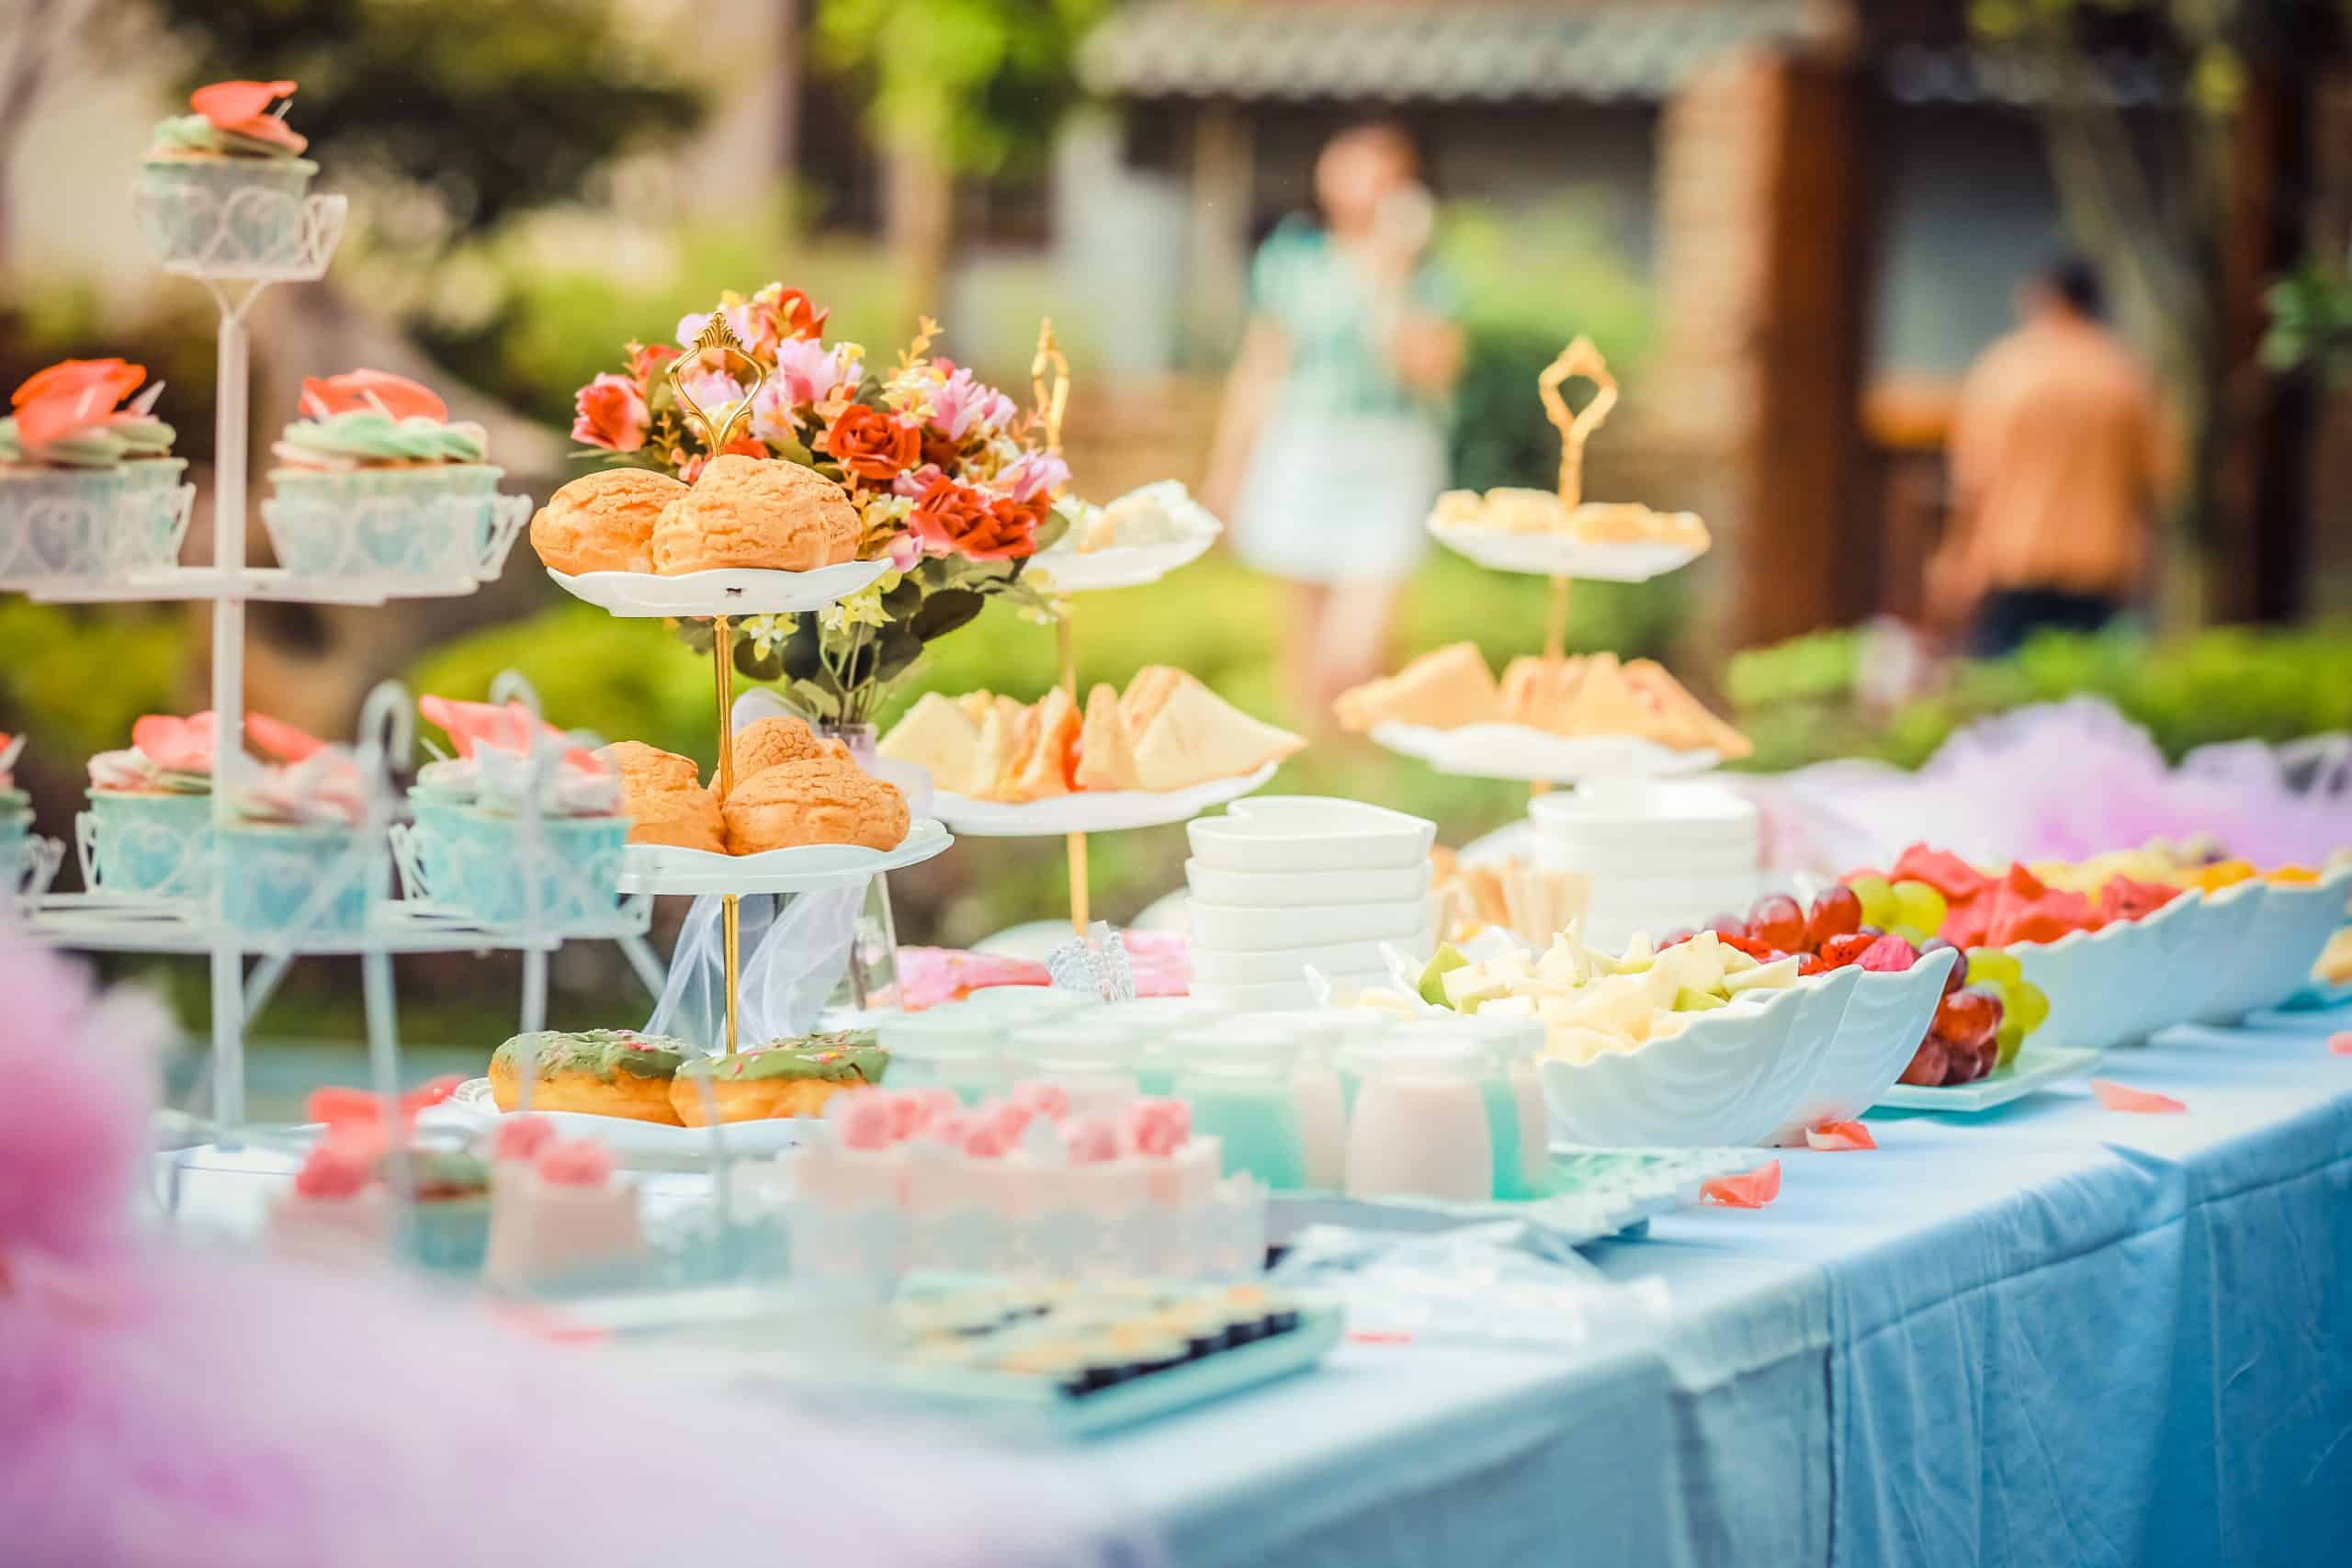 Wedding catering cost. Wedding catering near me.